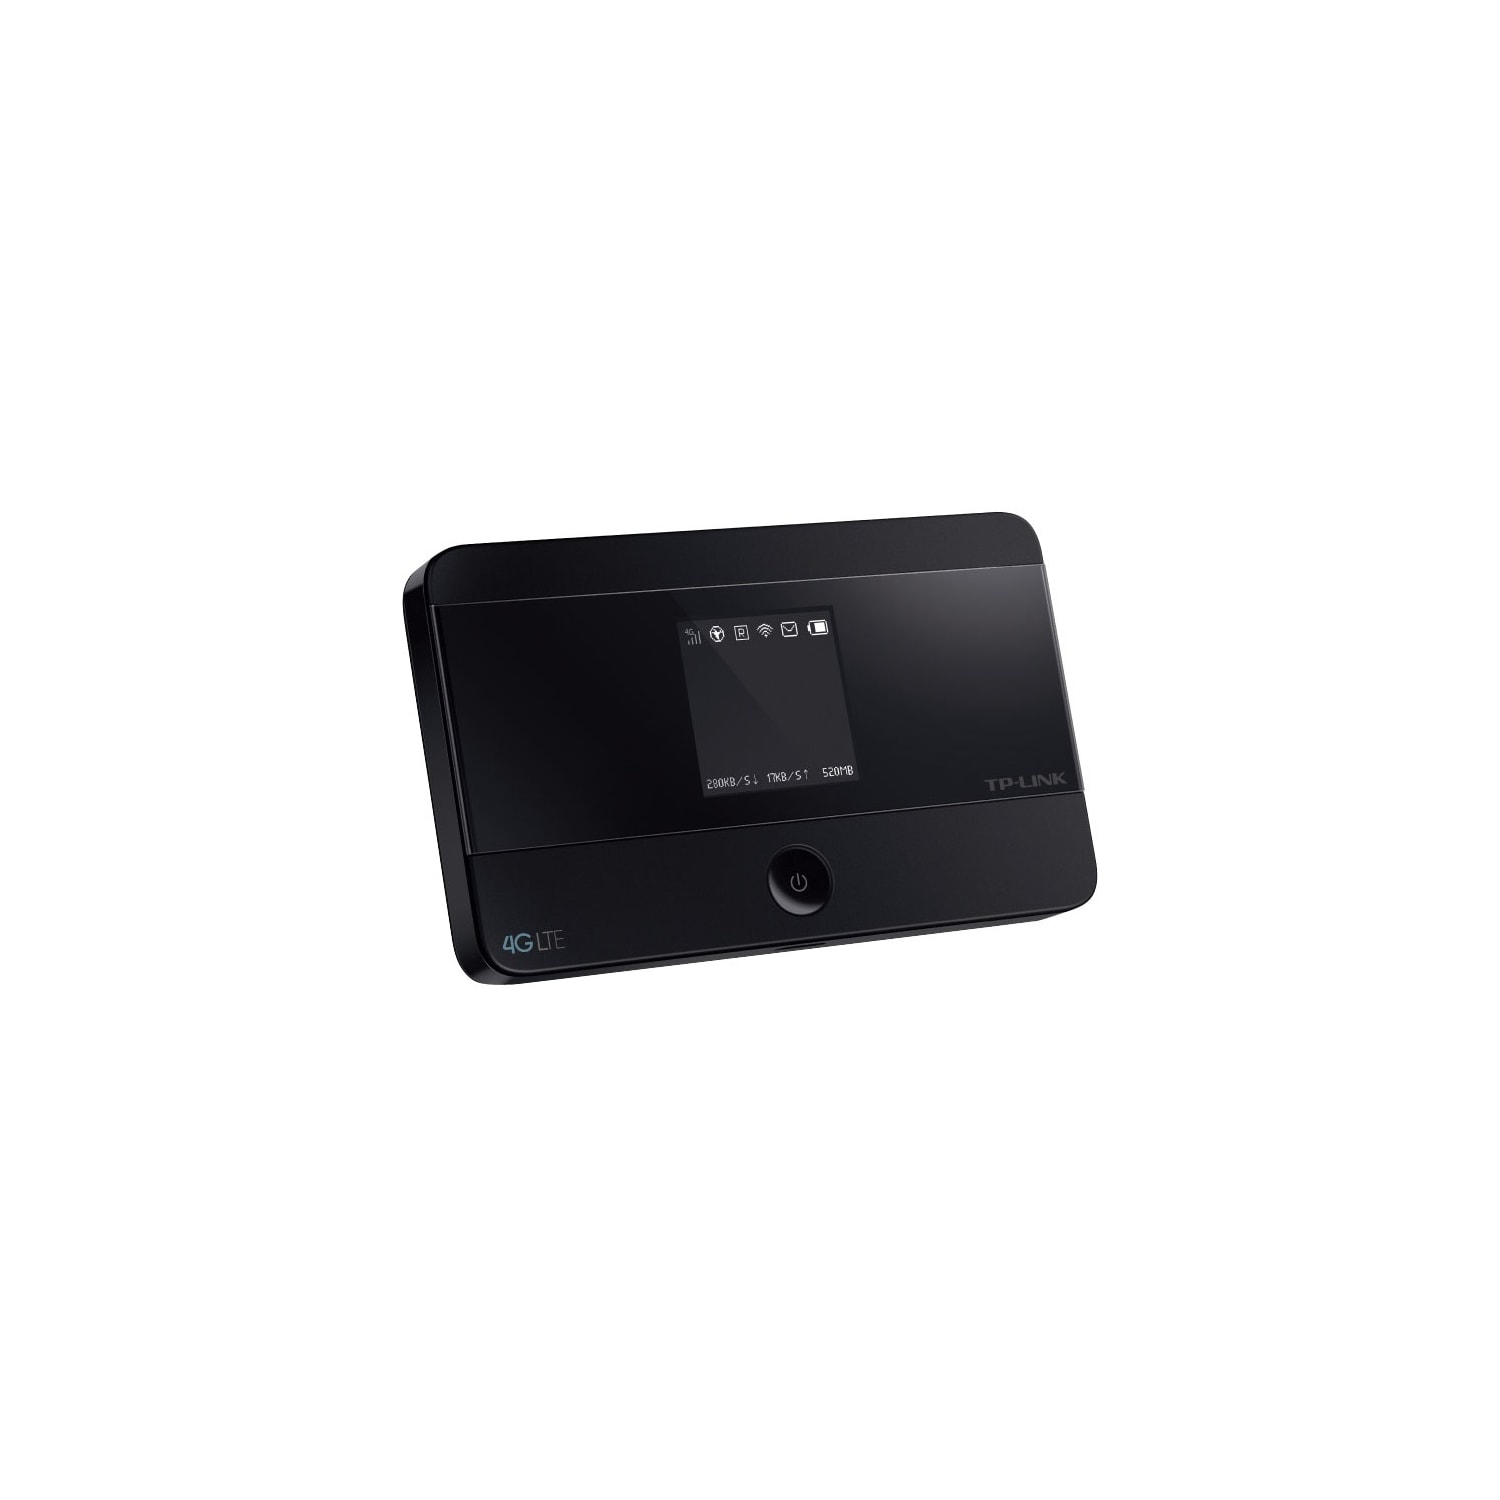 TP-LINK M7350 IEEE 802 11n Cellular Modem/Wireless Router